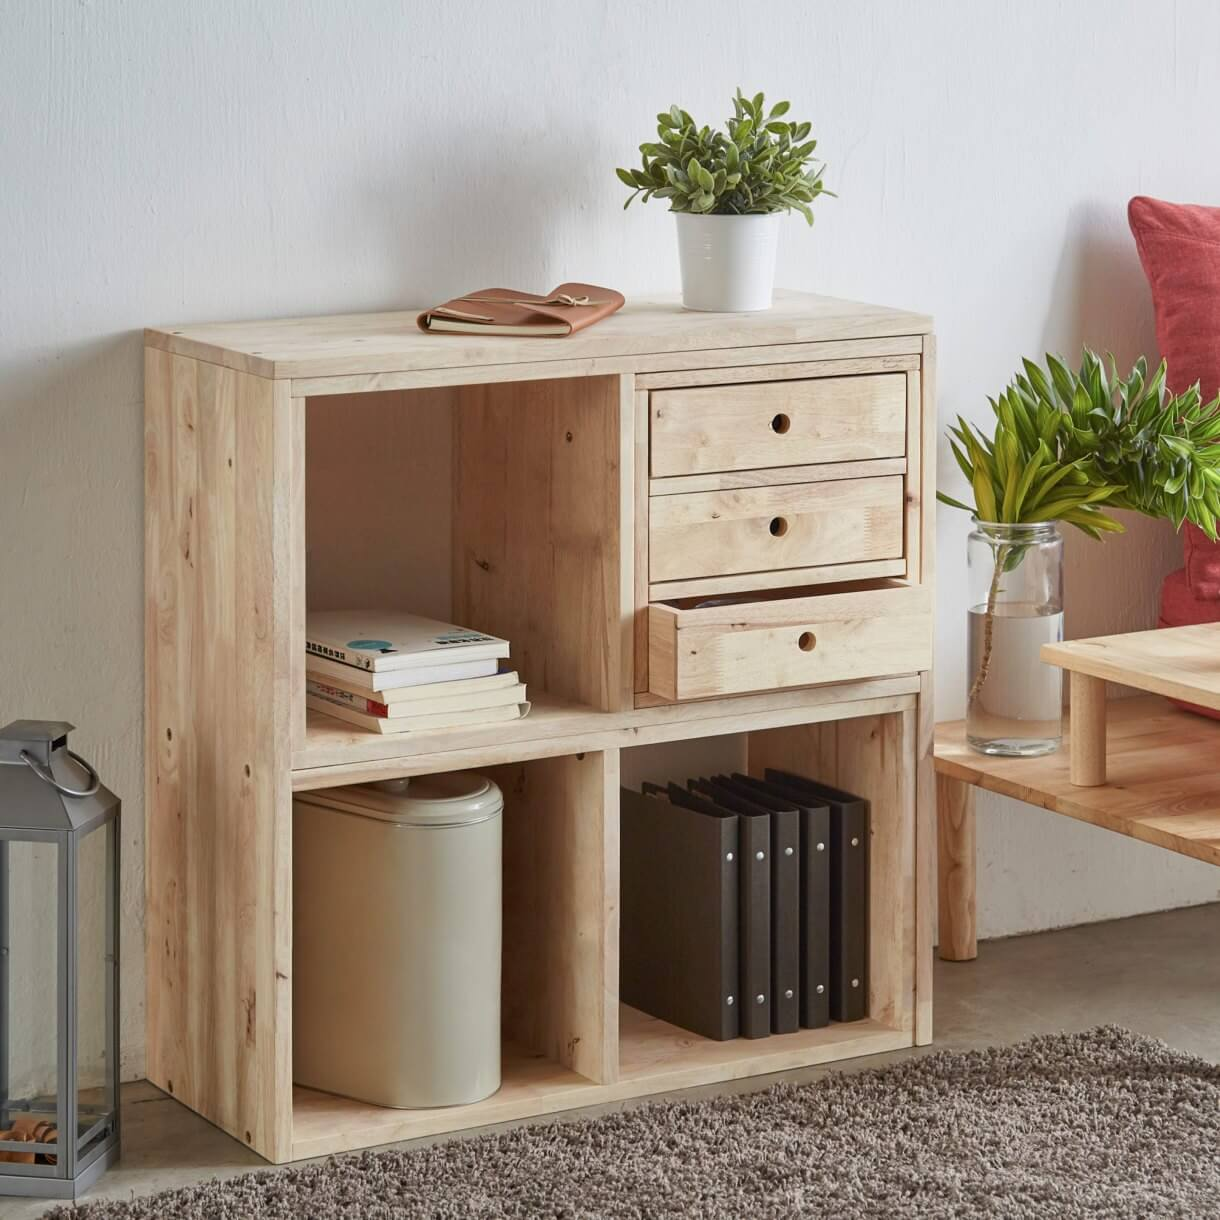 Declutter Work Space with Shelves to Stay Productive - Comfort Furniture